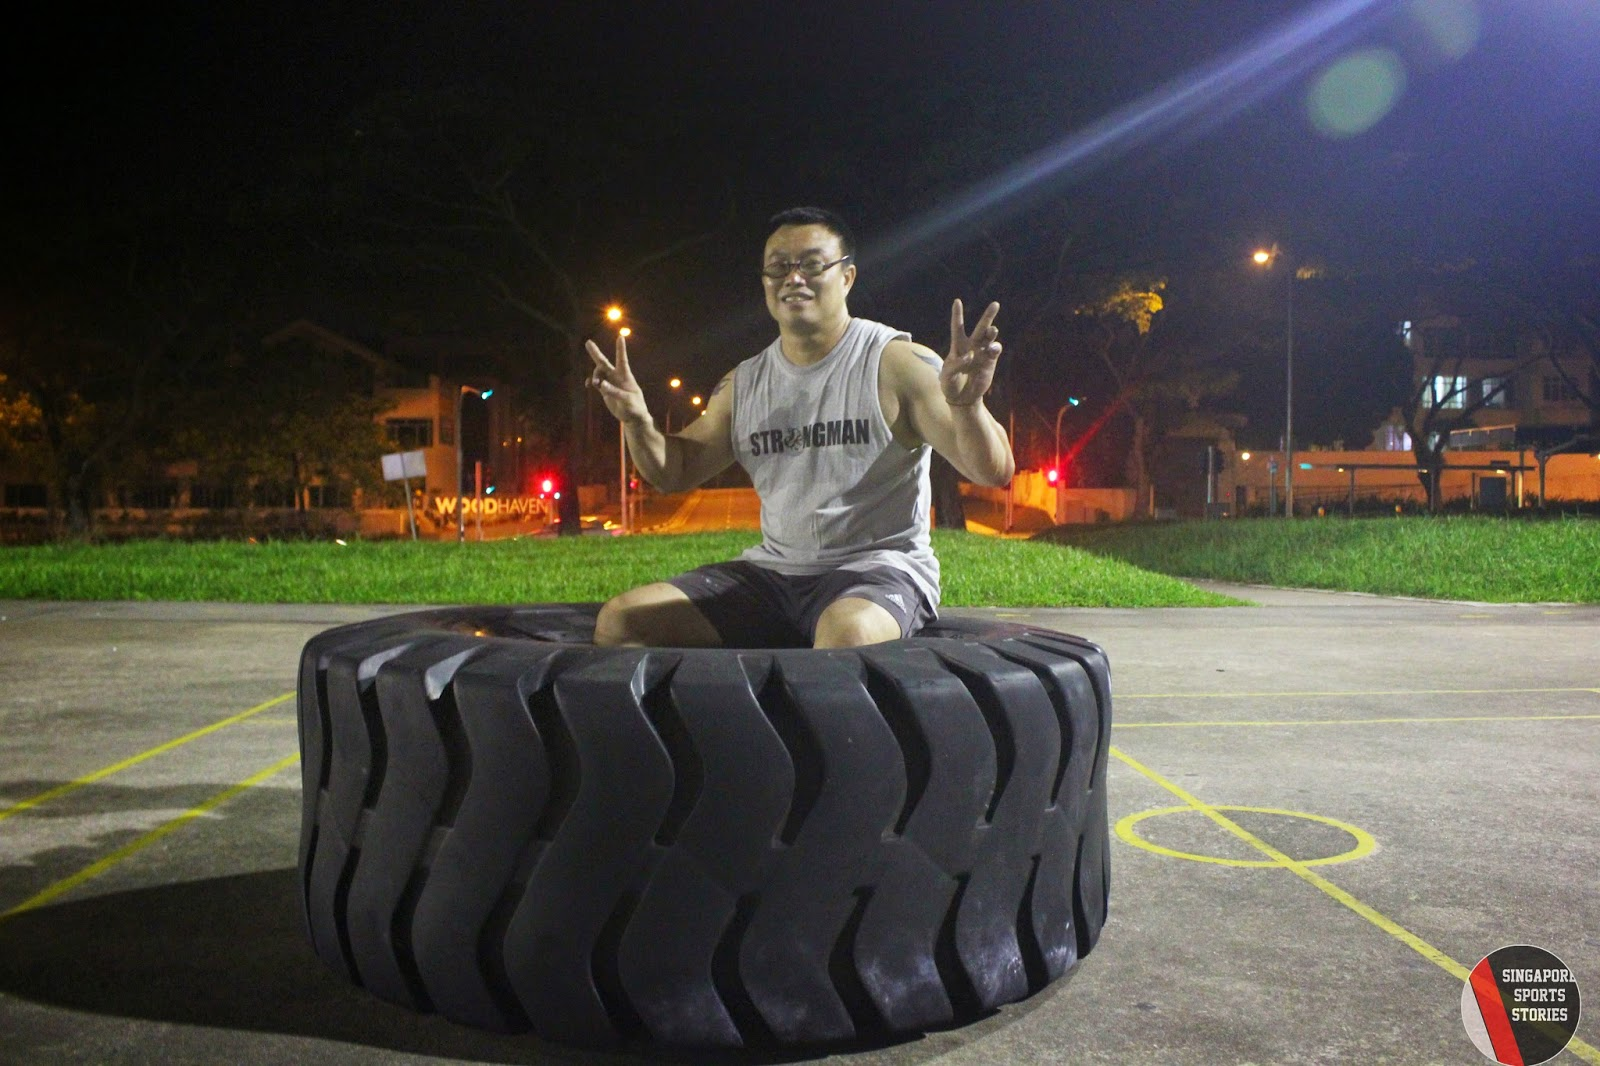 Goh Yeow Hui is one of the founding members of Singapore Strongman group, SG Titans